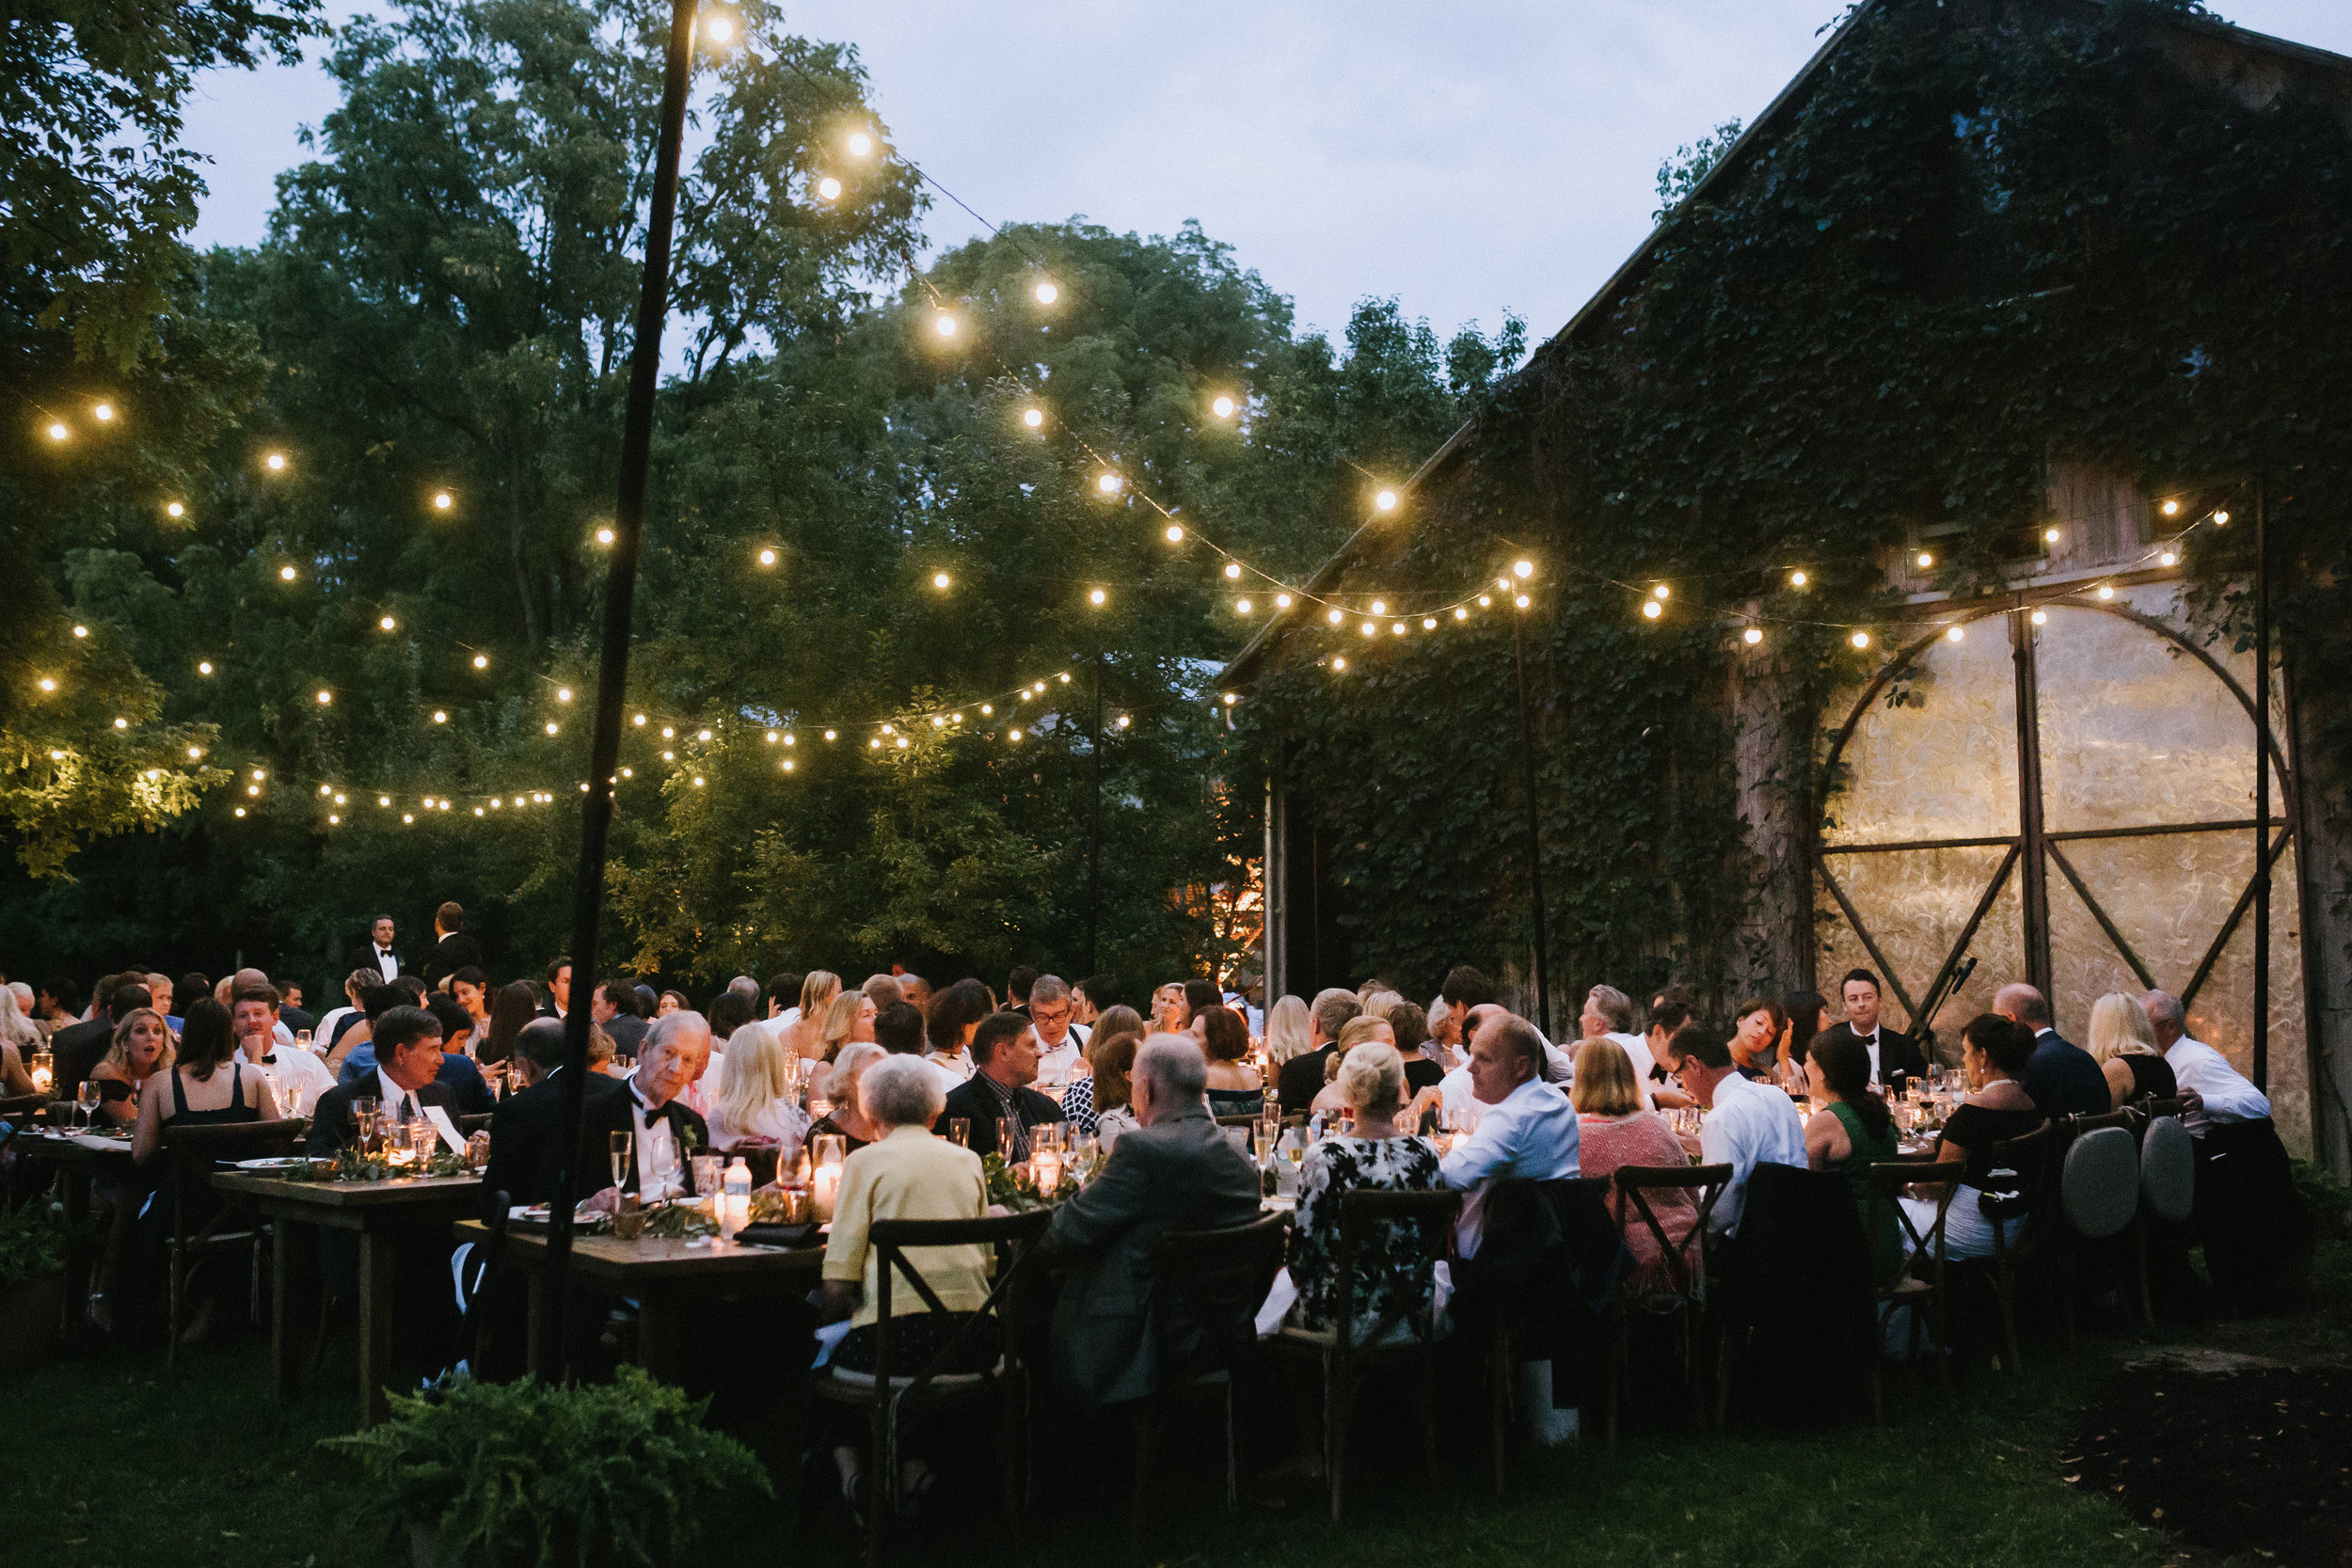 backyard-wedding-dayton-wedding-planner-bistro-lighting.jpg